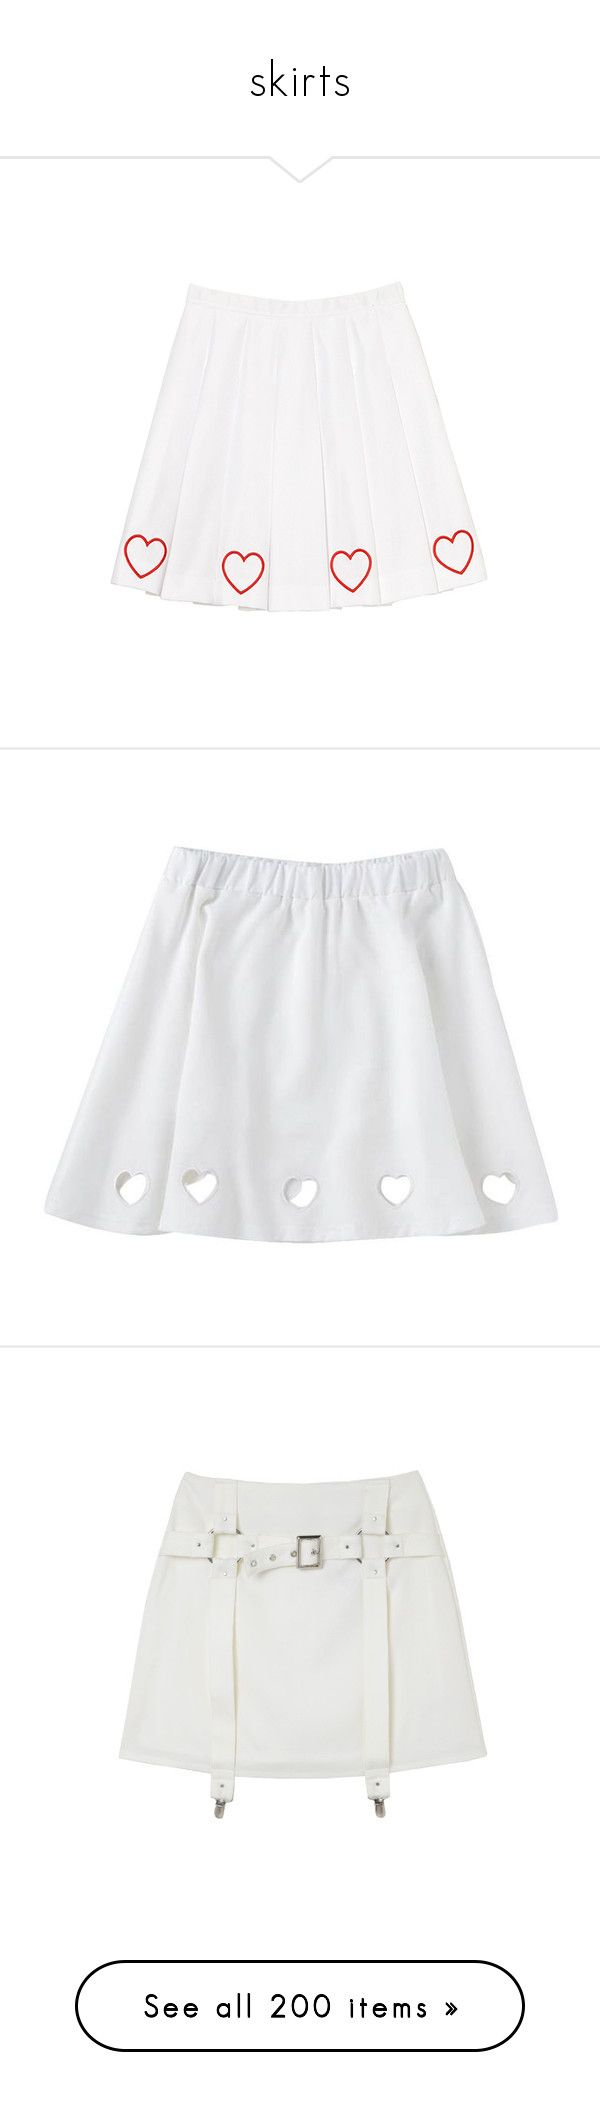 """""""skirts"""" by choiseungcheols ❤ liked on Polyvore featuring skirts, mini skirts, bottoms, clothing - skirts, white pleated skirt, pleated miniskirt, pleated mini skirt, puffy mini skirt, short puffy skirts and bubble skirts"""